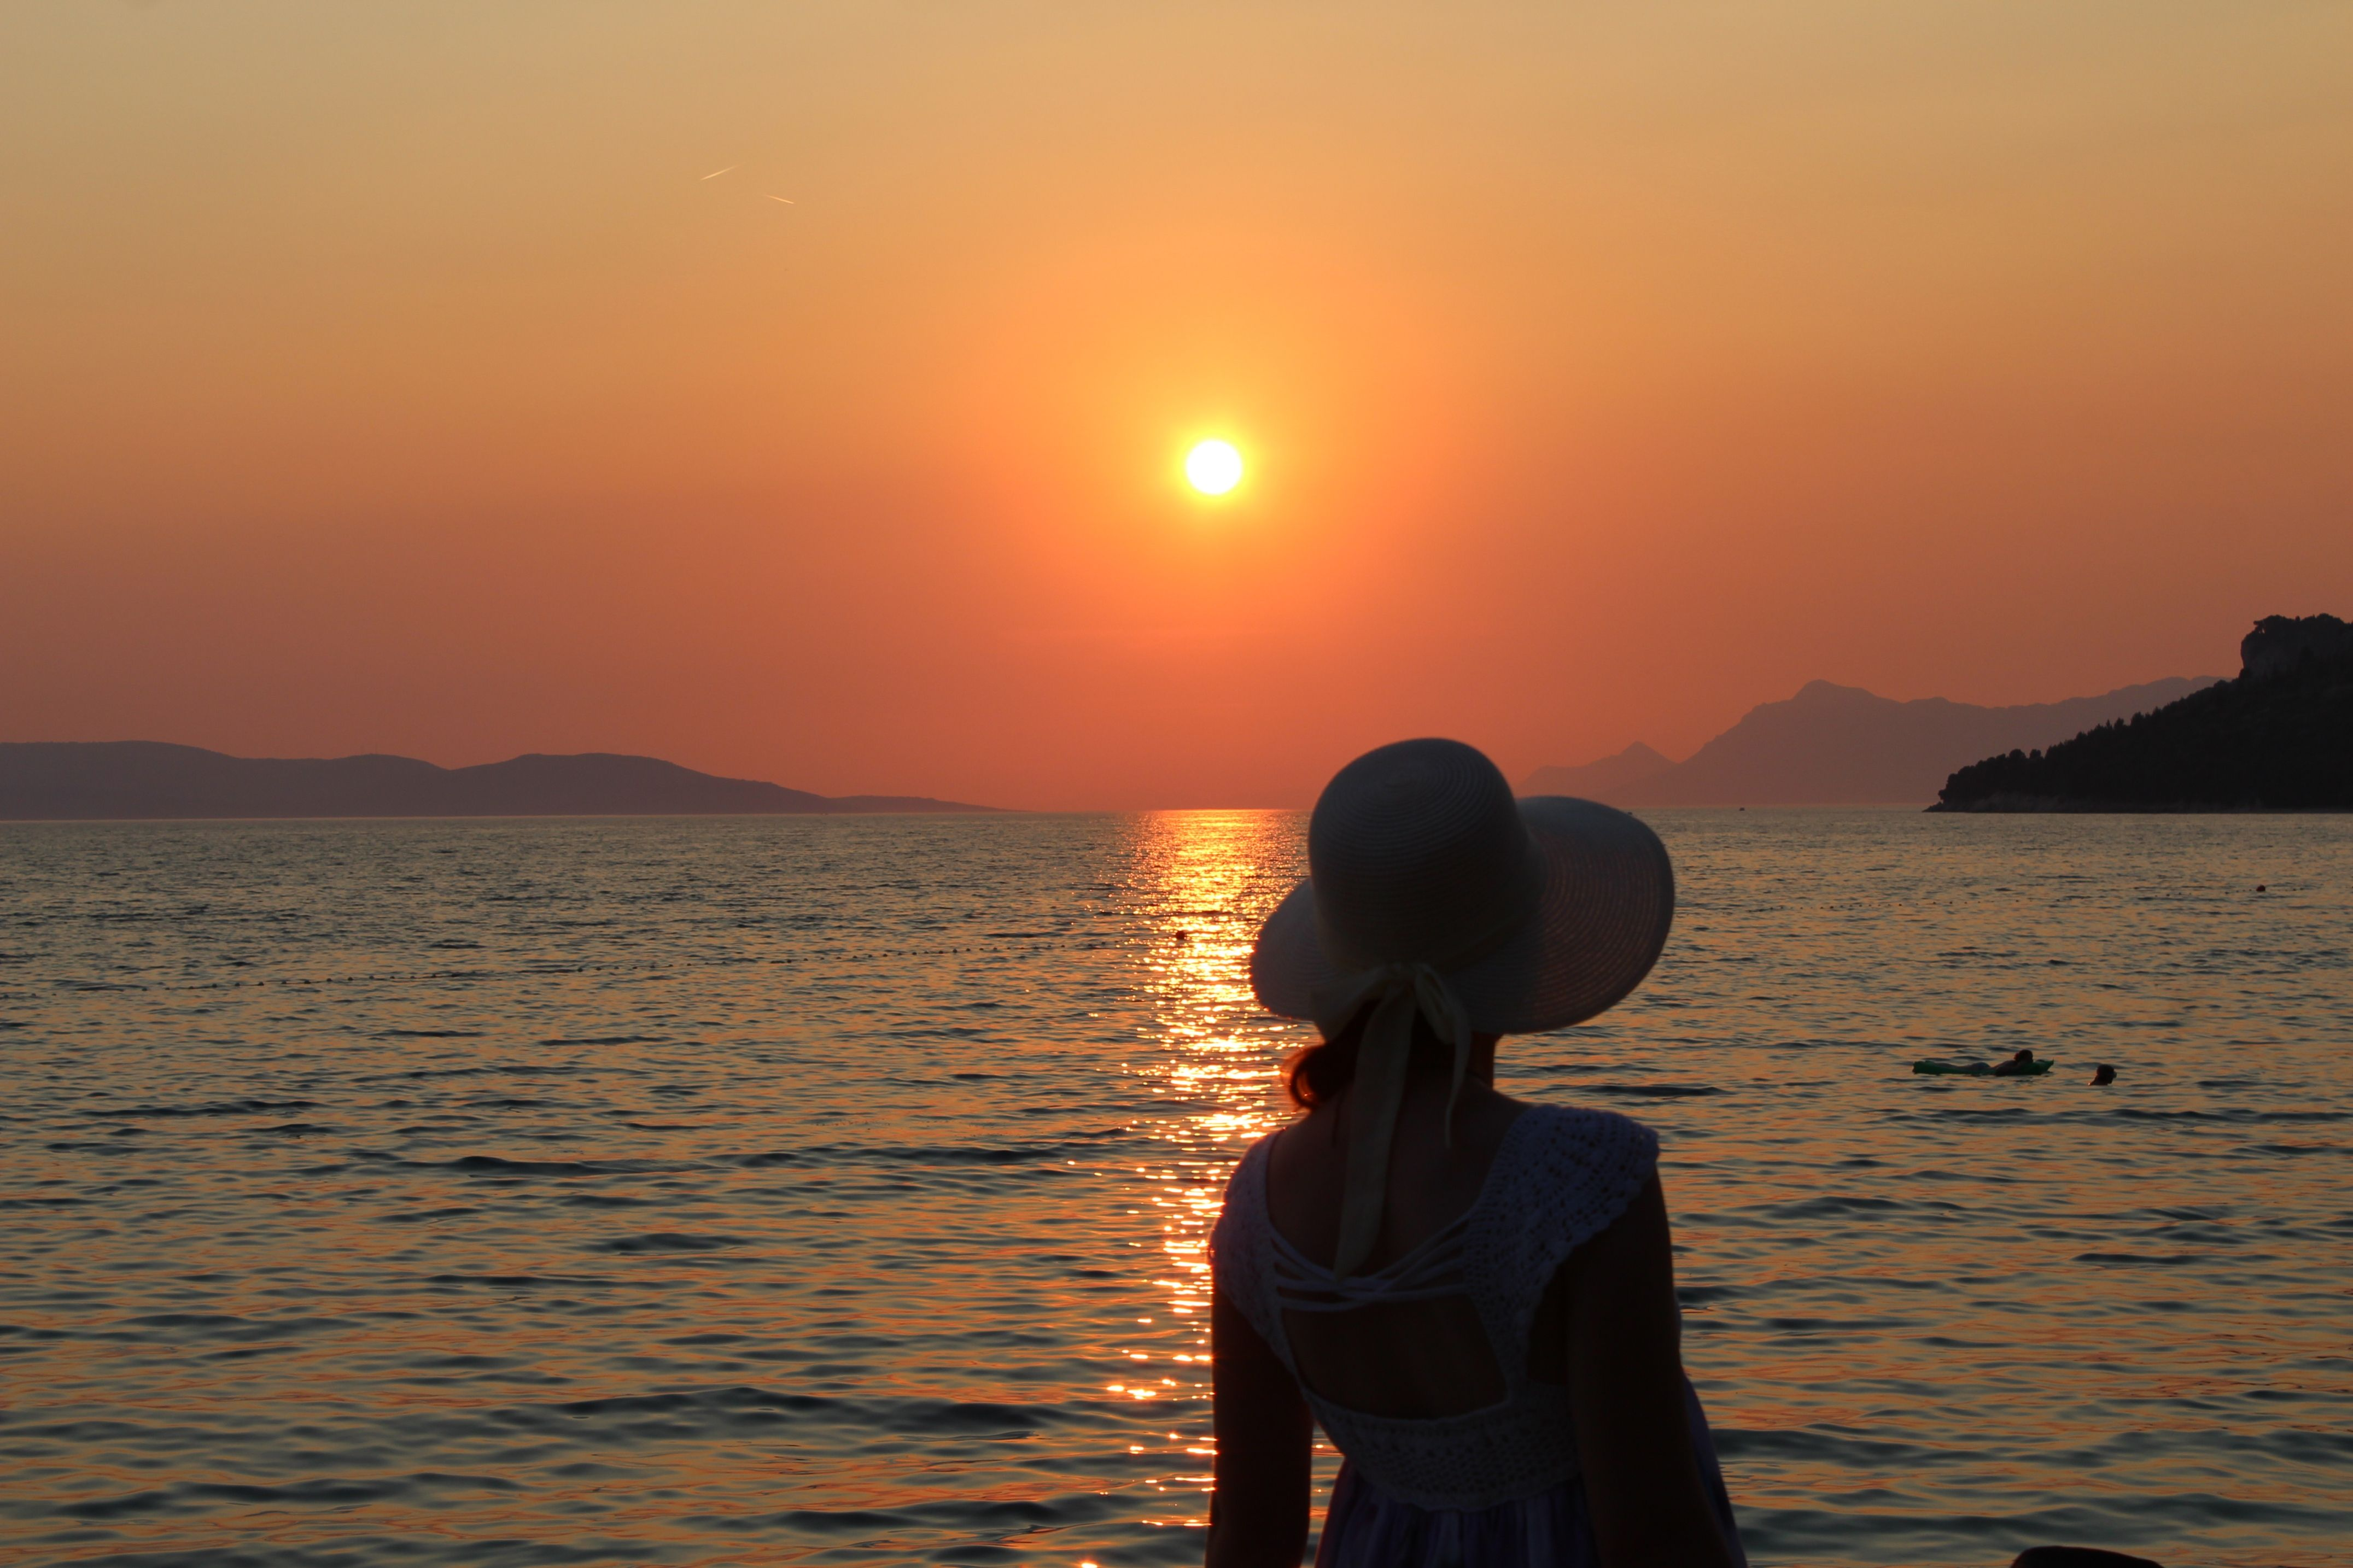 #beautiful #sunset #summer2015 #croatia #adriaticsea #tucepi  via @hasanovicemina